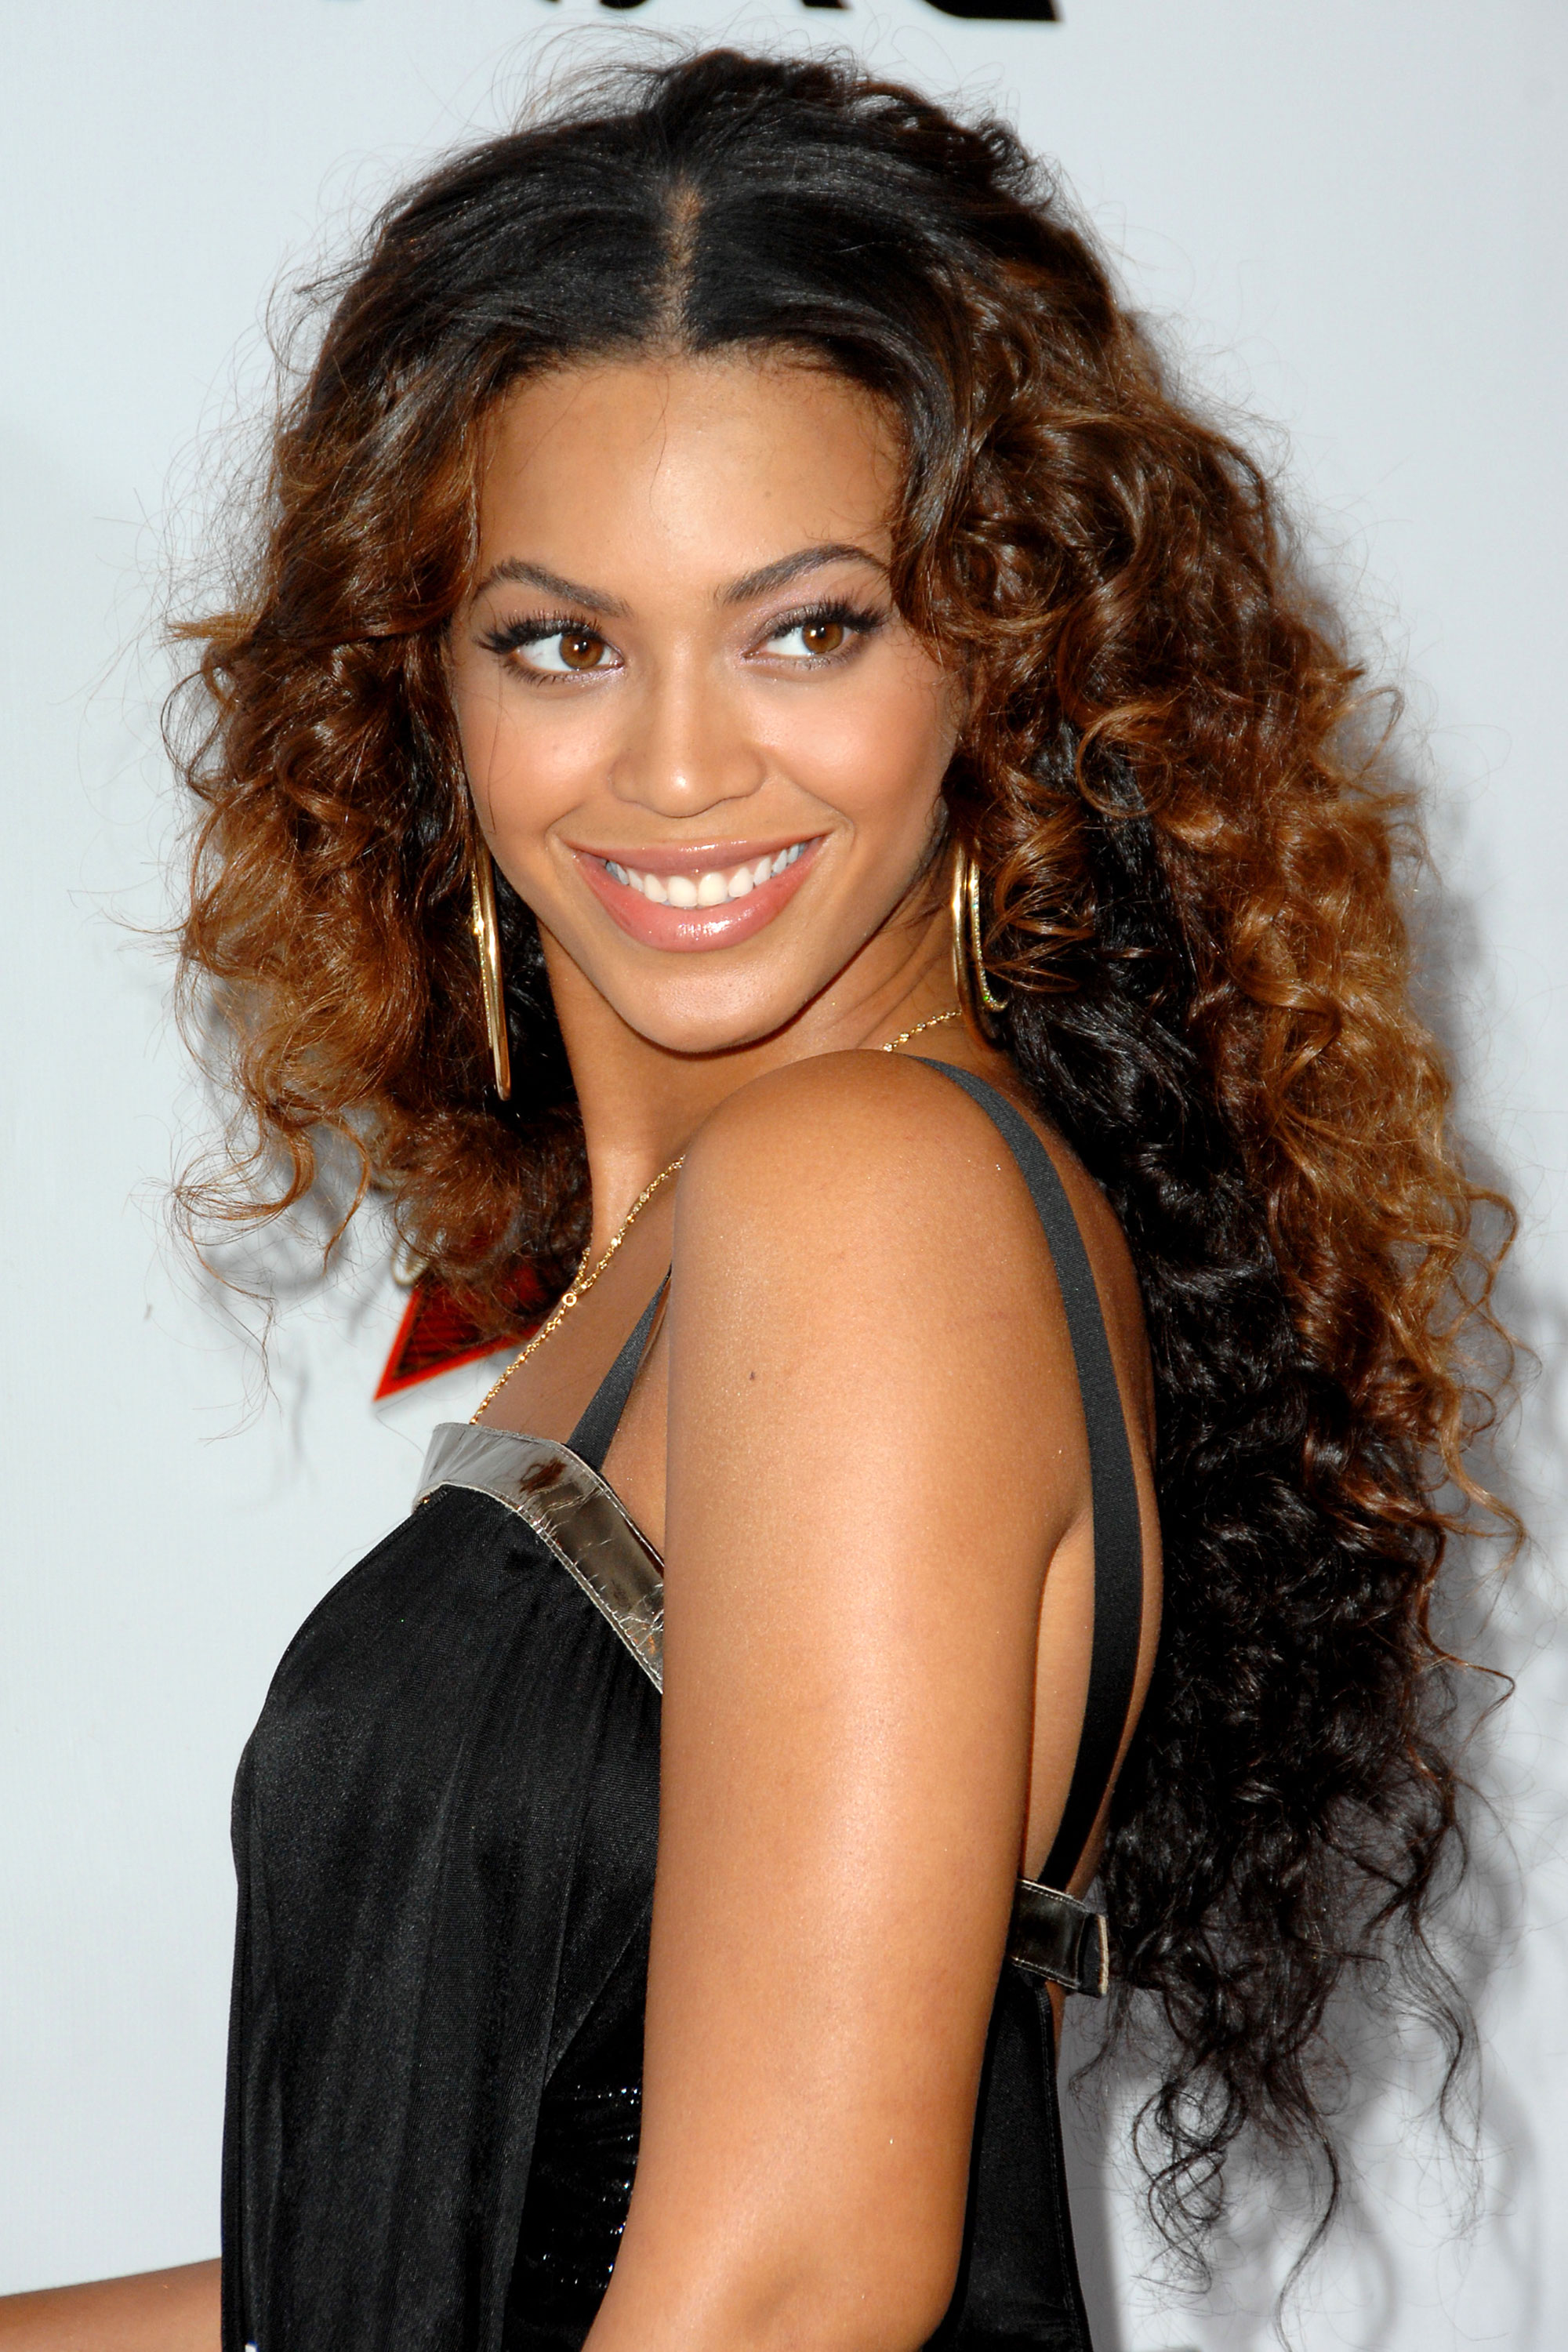 Prime 40 Beyonce Hairstyles Beyonce39S Real Hair Long Hair And Short Short Hairstyles For Black Women Fulllsitofus